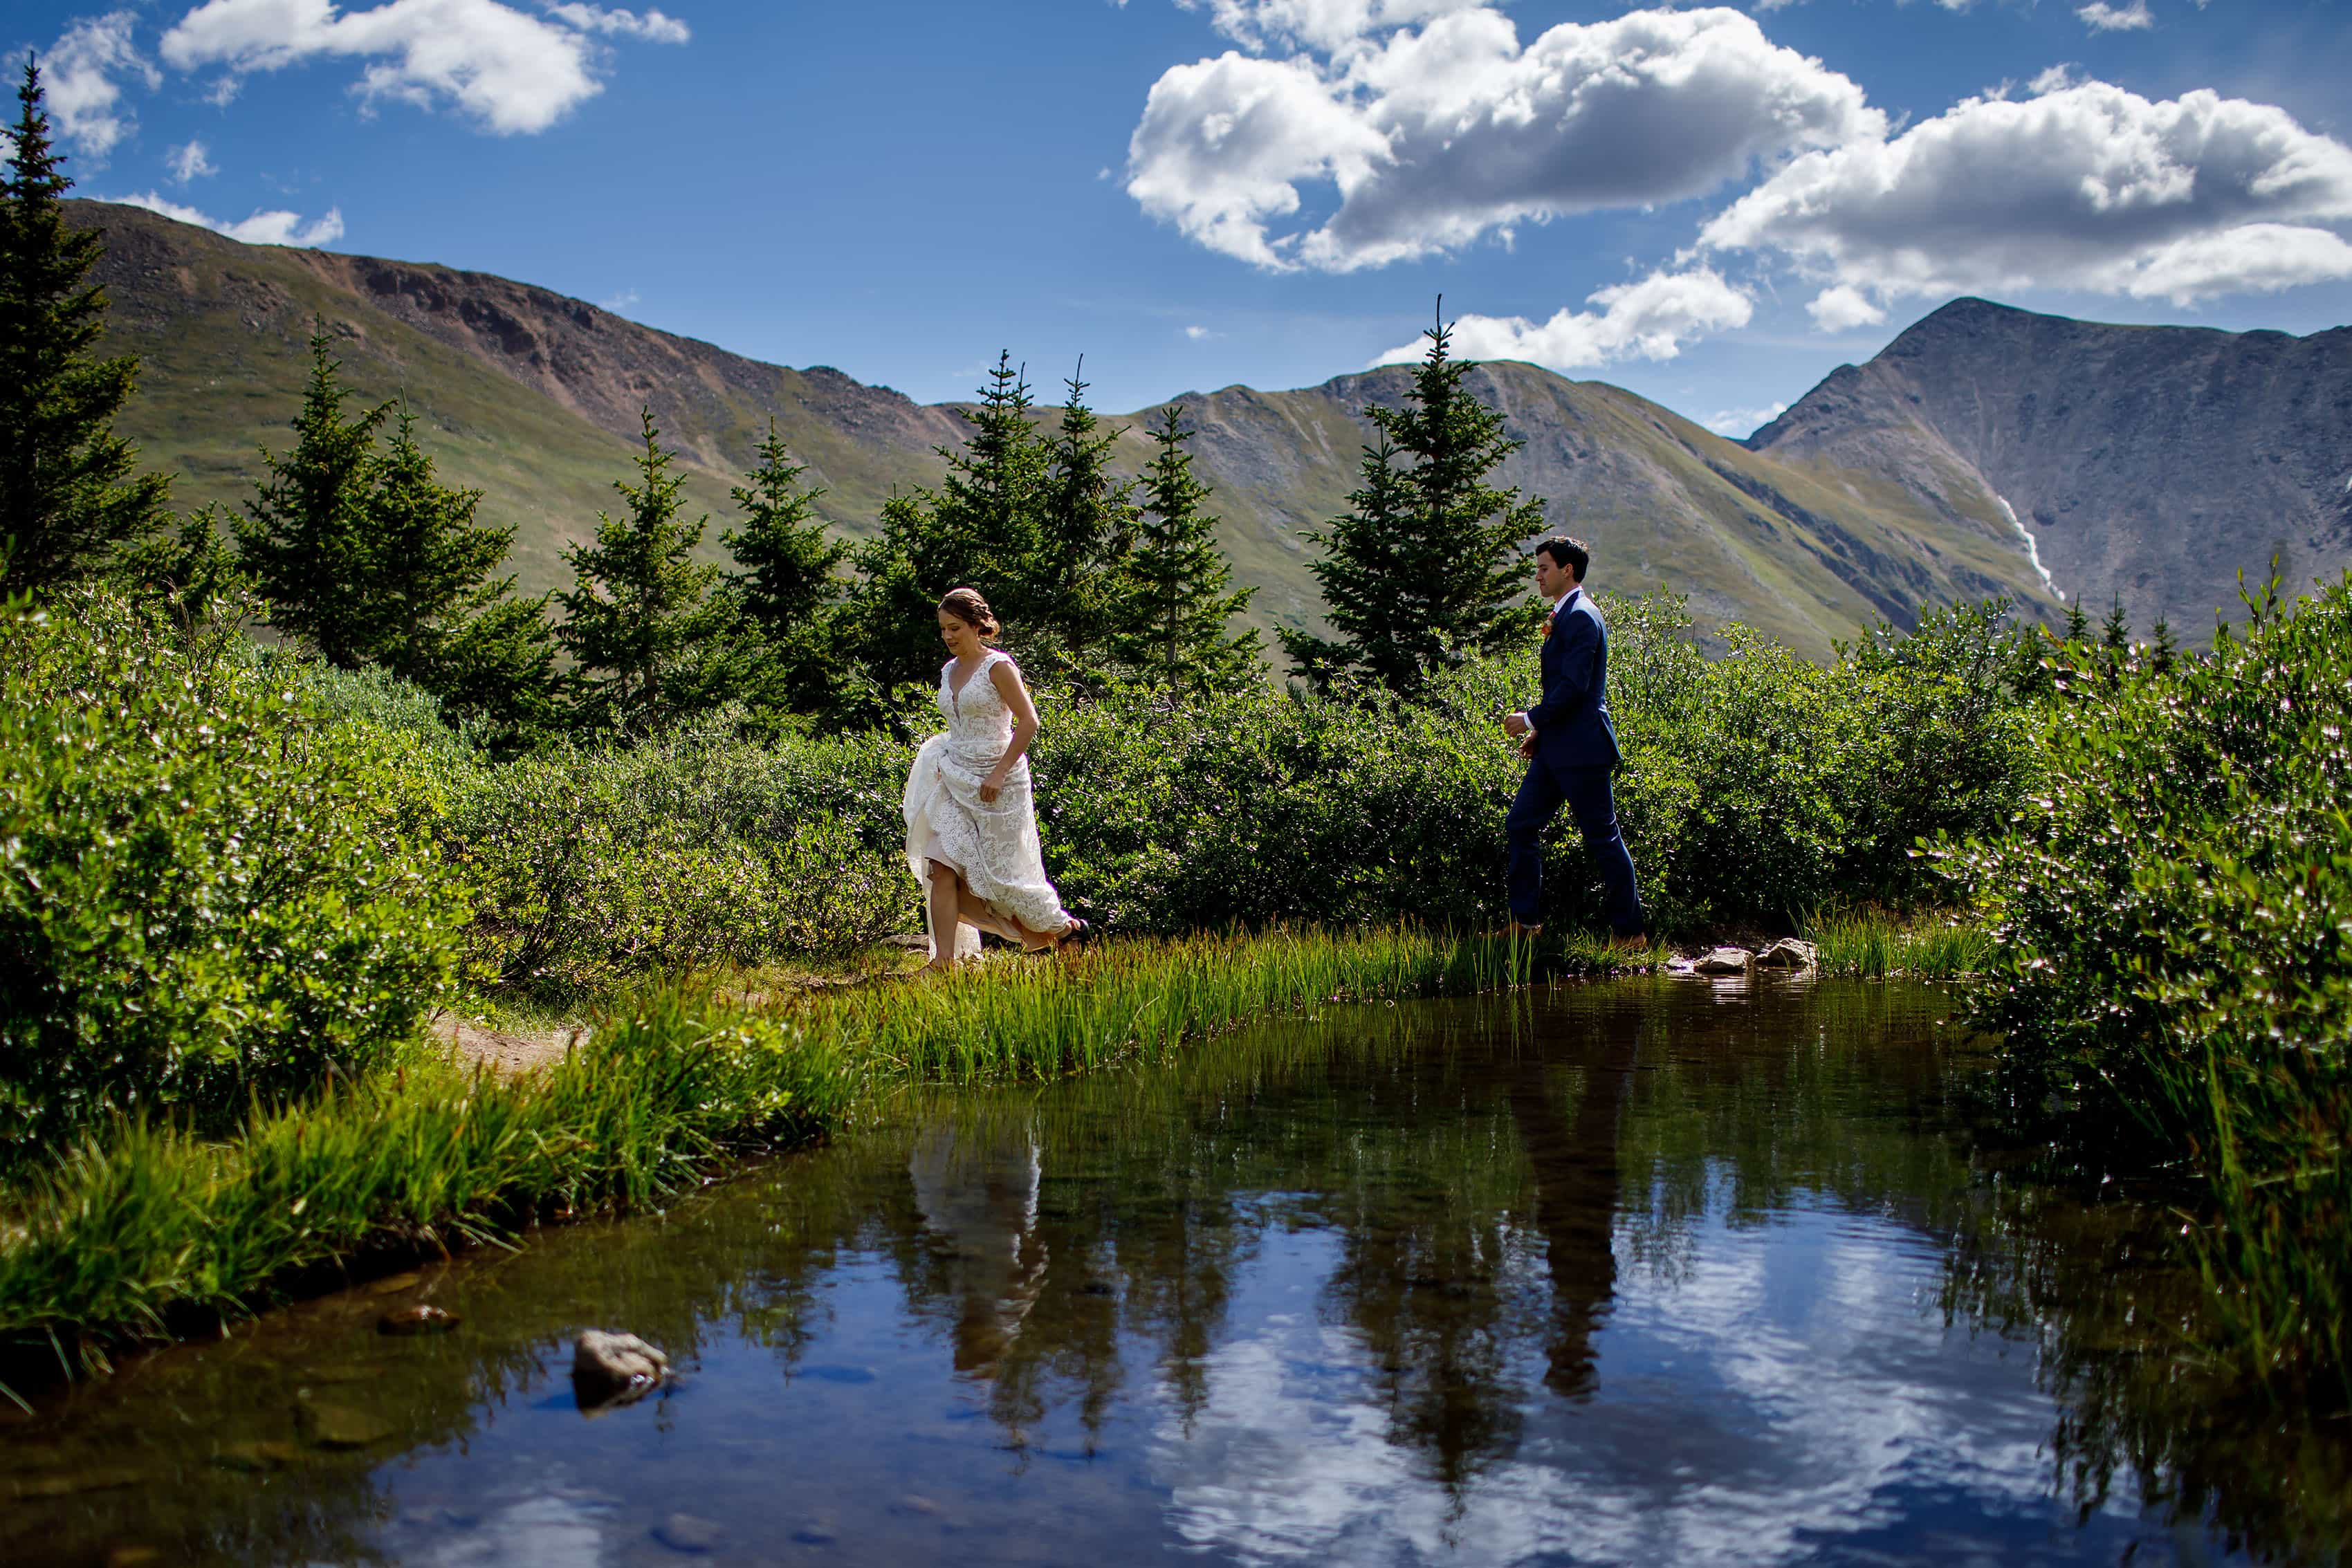 The bride and groom pass by a mountain pond on Loveland Pass during their wedding day